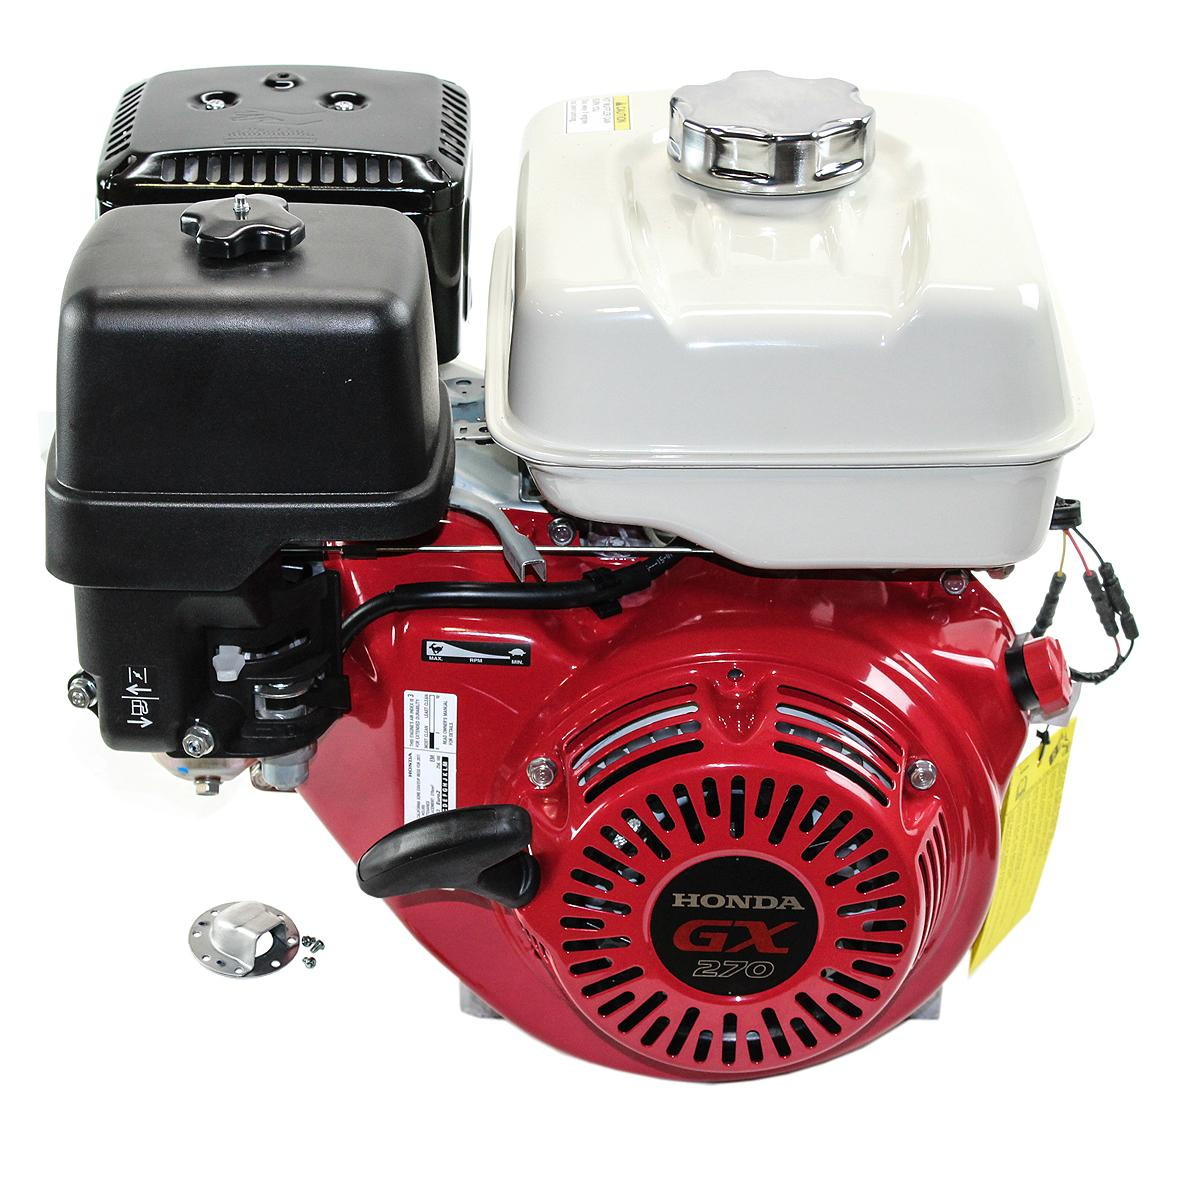 Find every shop in the world selling gx660rbdw honda